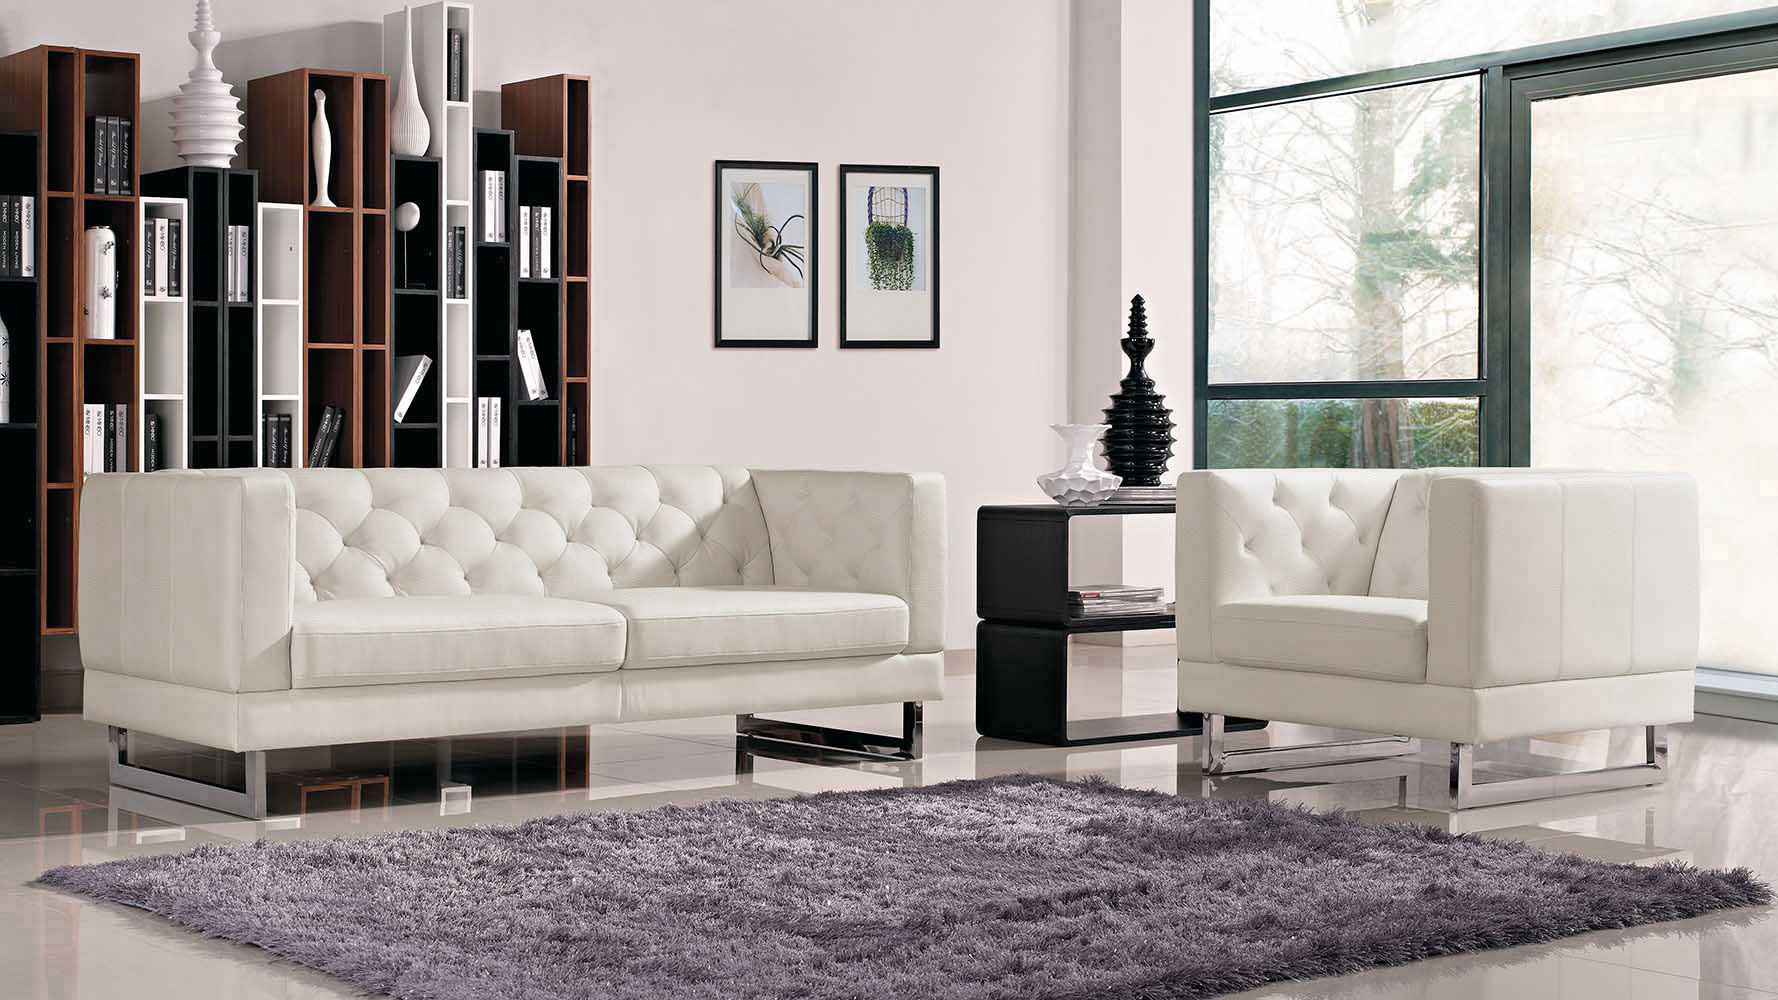 100+ [ Tufted Couch Set ] | Radley Sofa Beige By Homelegance